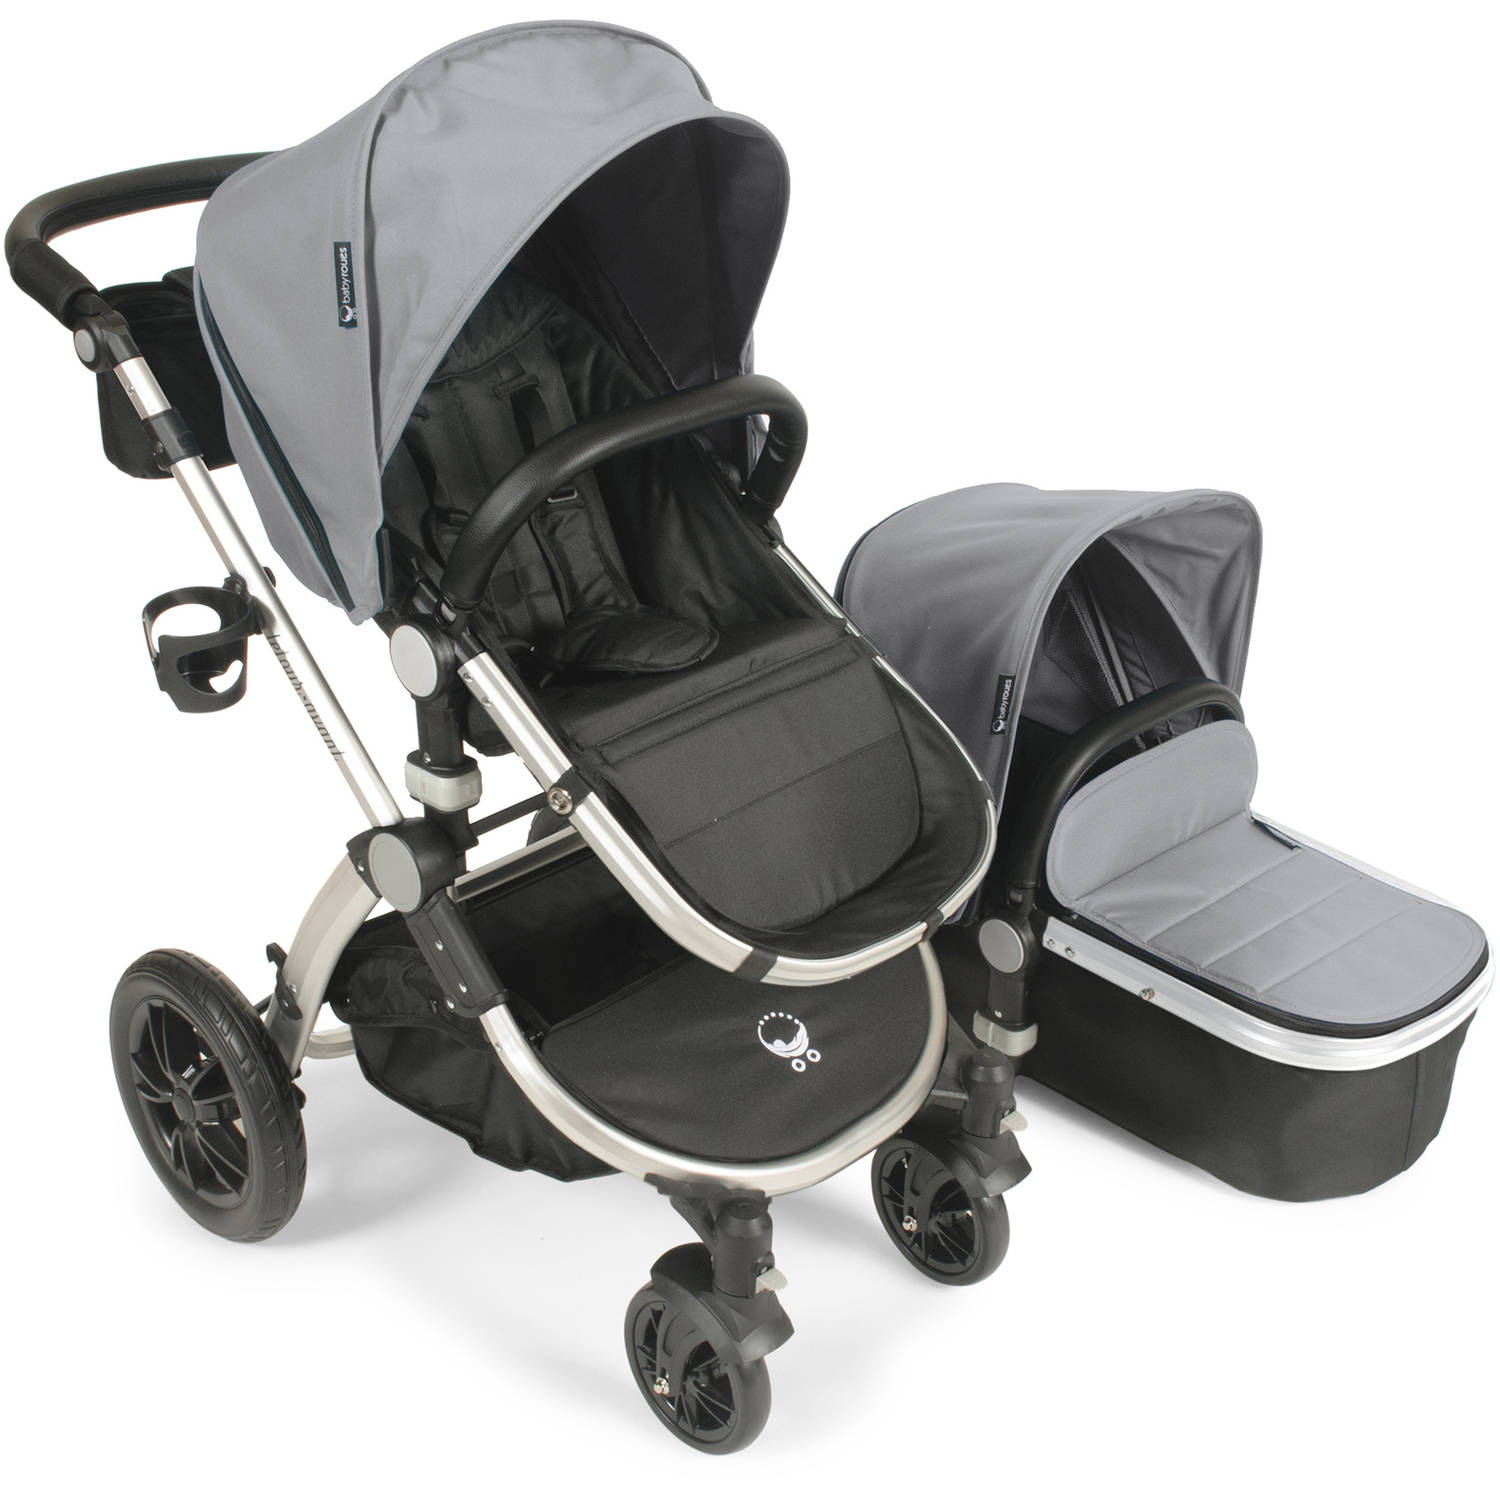 Babyroues Letour Avant Stroller with Bassinet Silver Frame, Silver Fabric by Babyroues